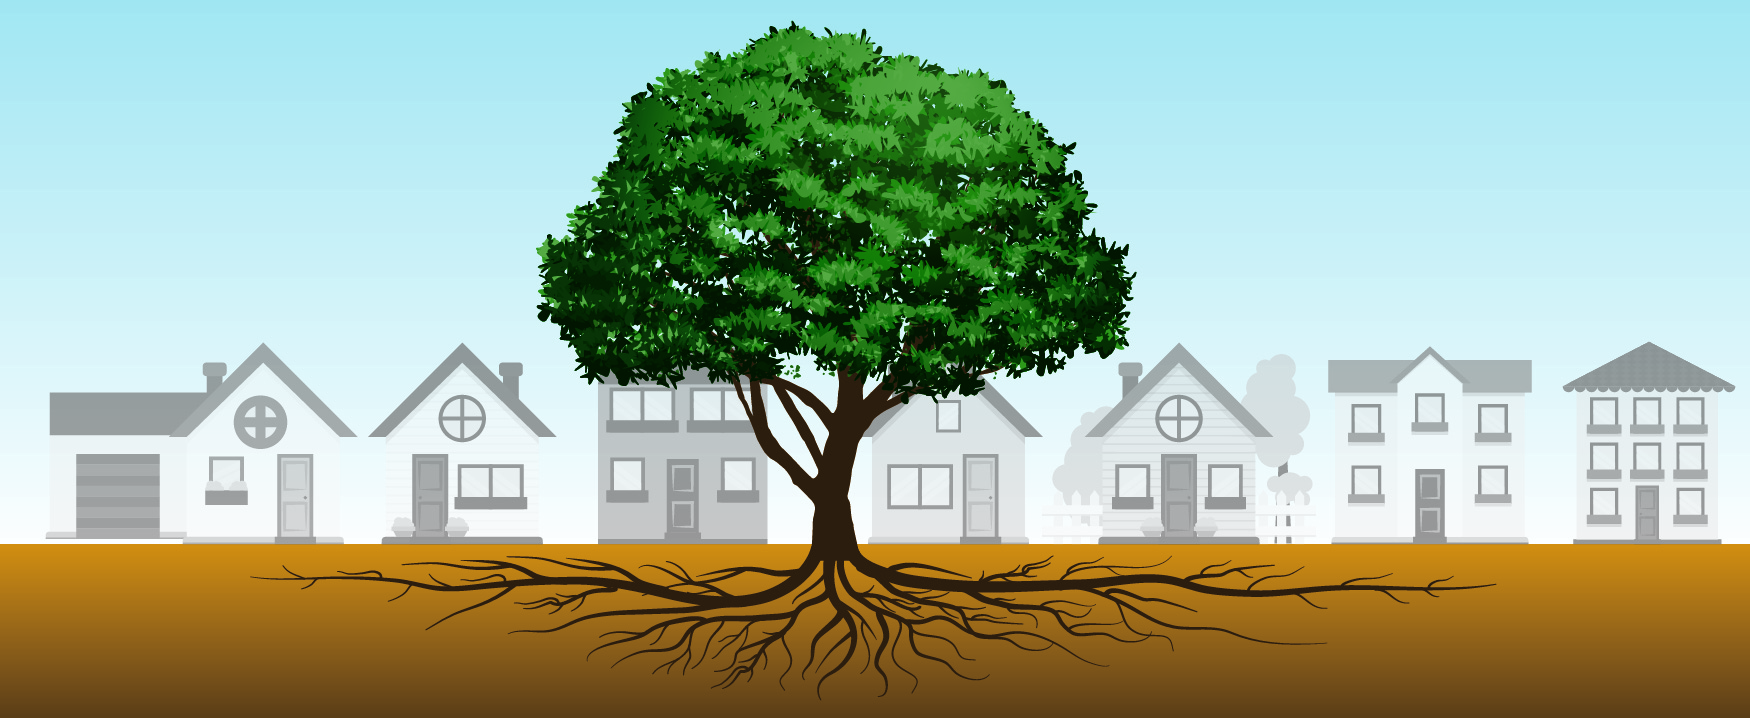 A tree grows centered in front of a row of houses. The tree's roots spread out underground, extending the width of the row of houses in both directions.